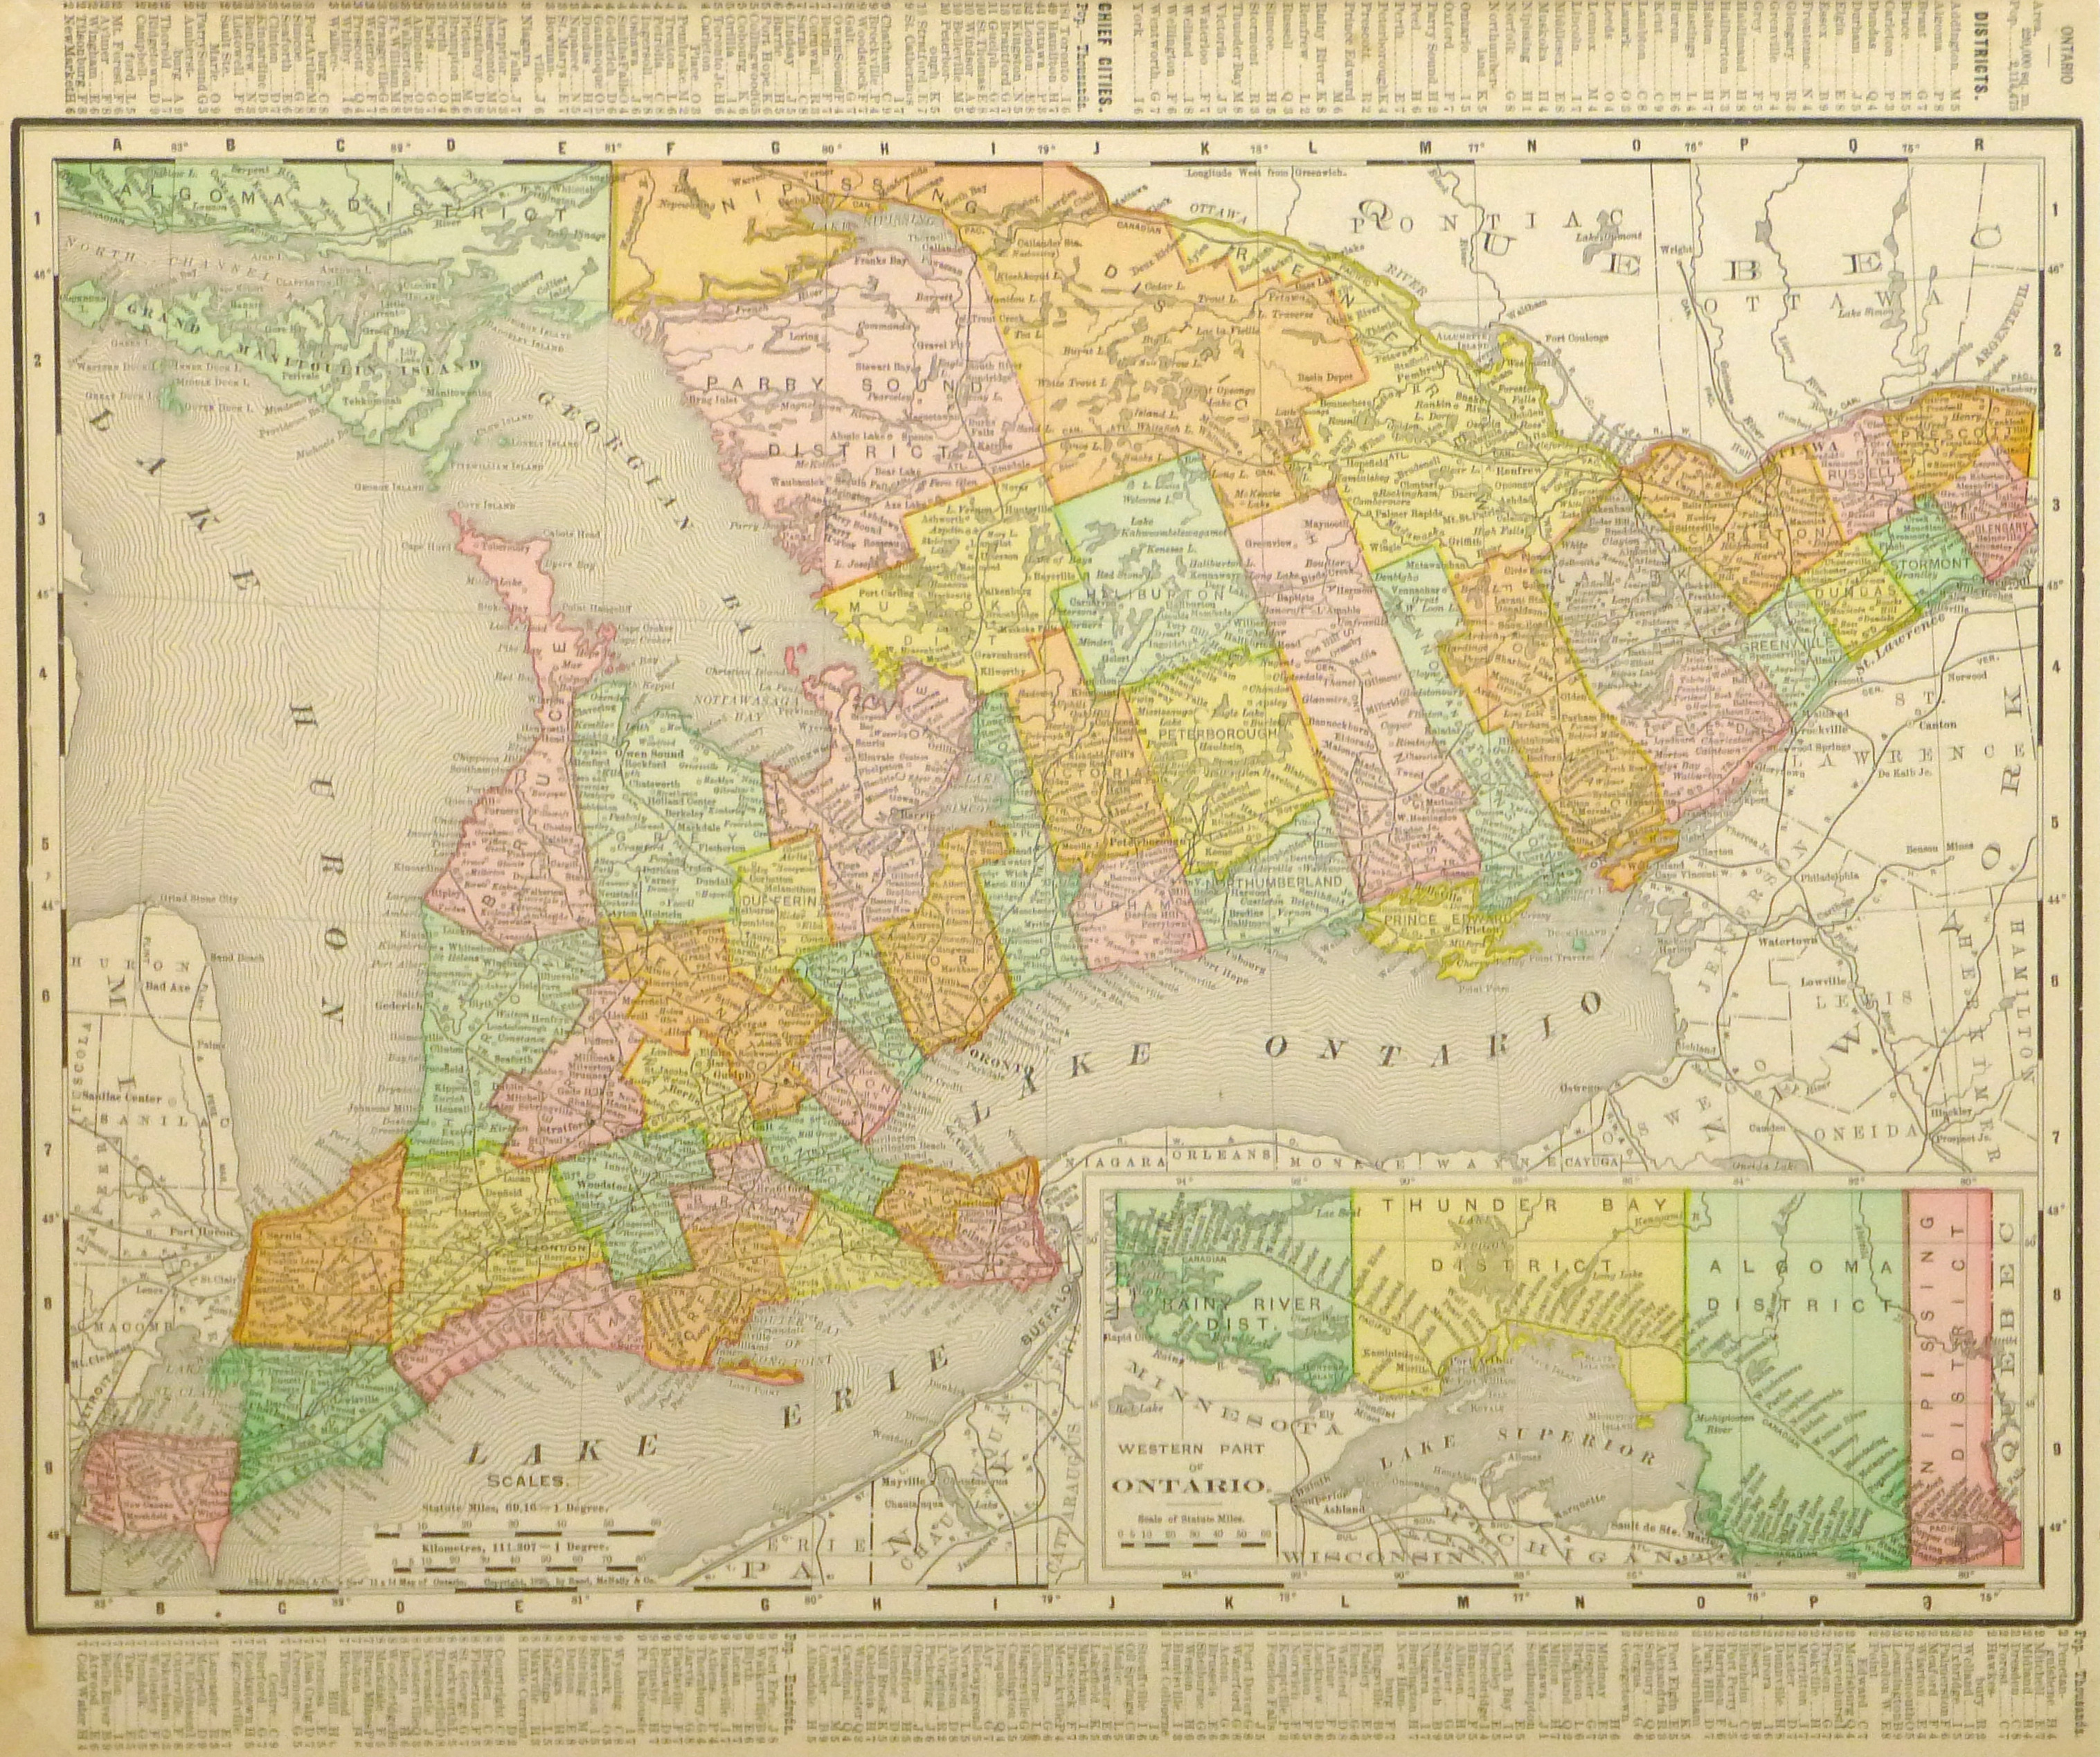 Ontario Canada Map Original Art Antique Maps Prints - Ontario canada map